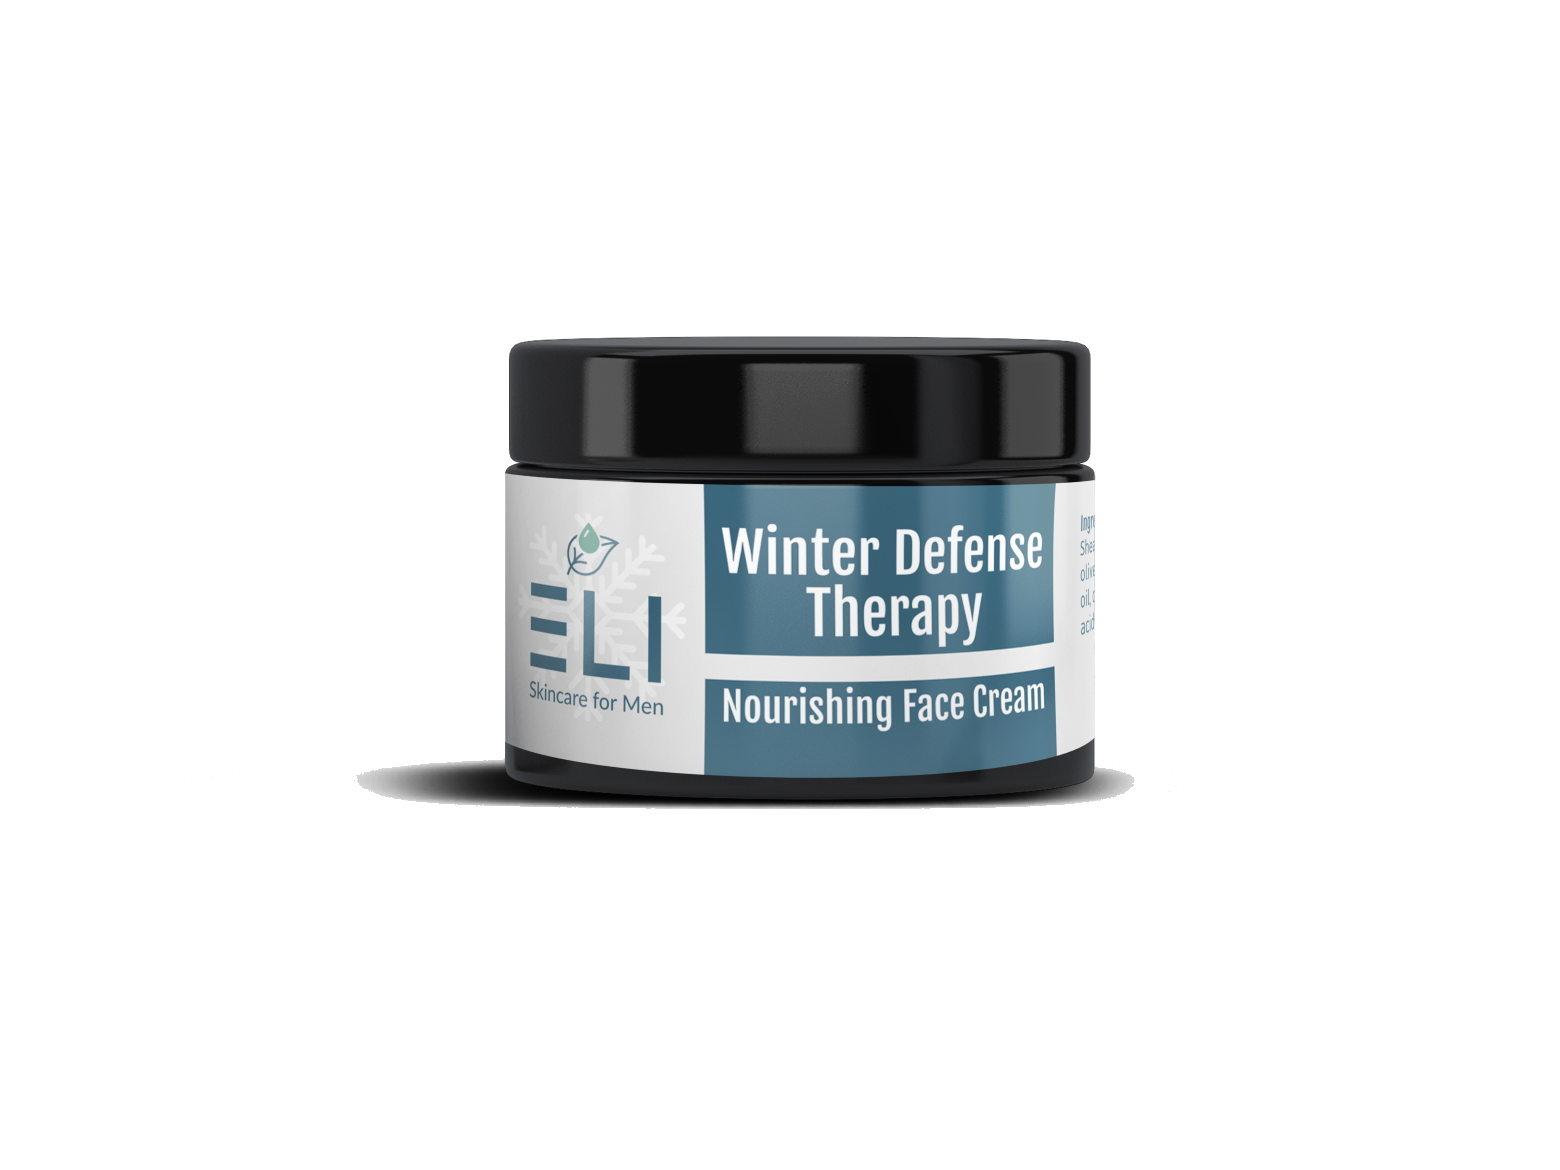 Winter Defense Therapy - Nourishing Face Cream